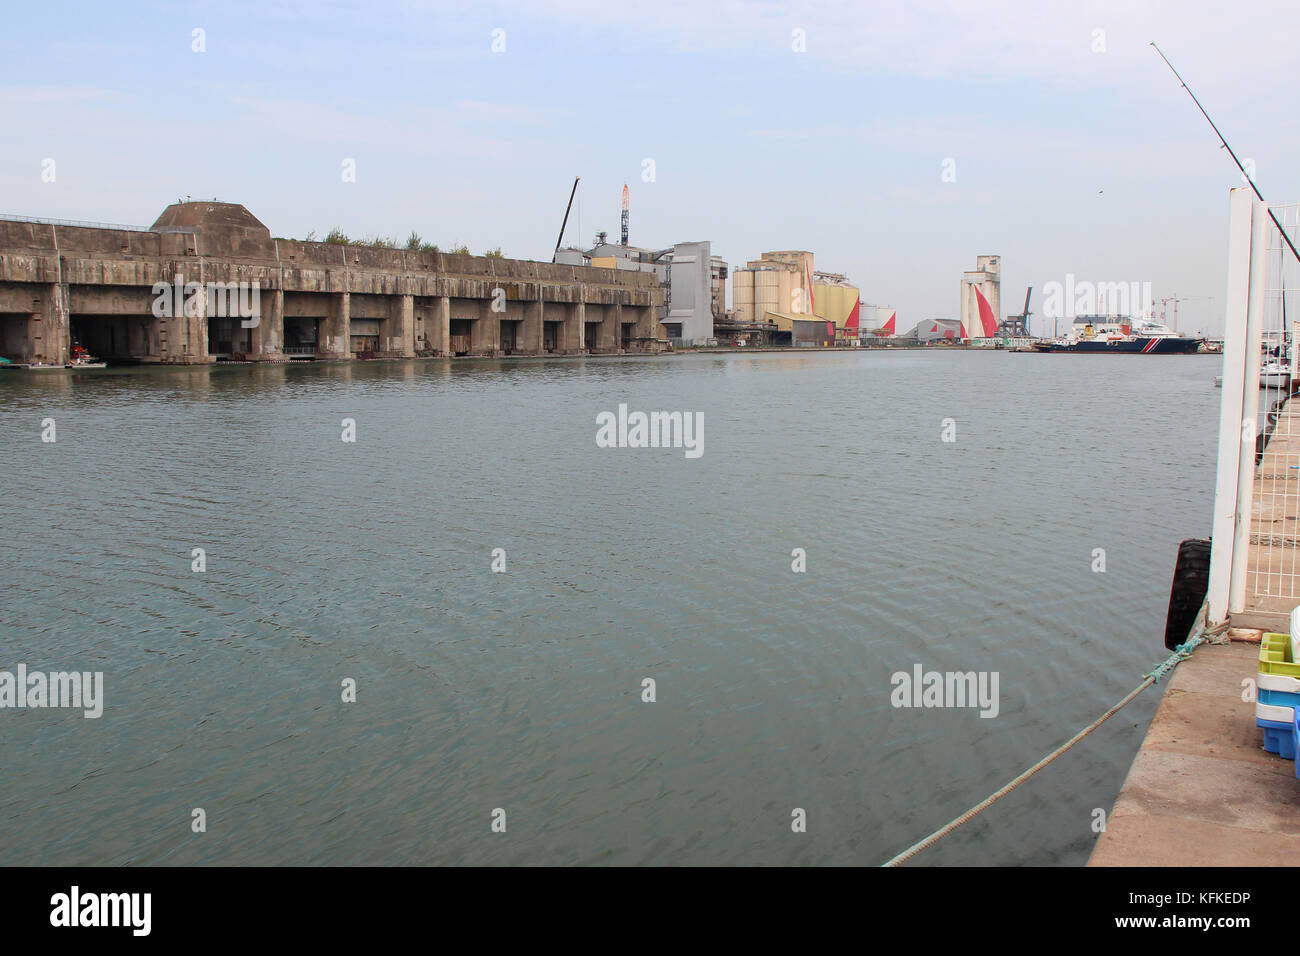 Submarine Base And Port In Saint Nazaire France Stock Photo